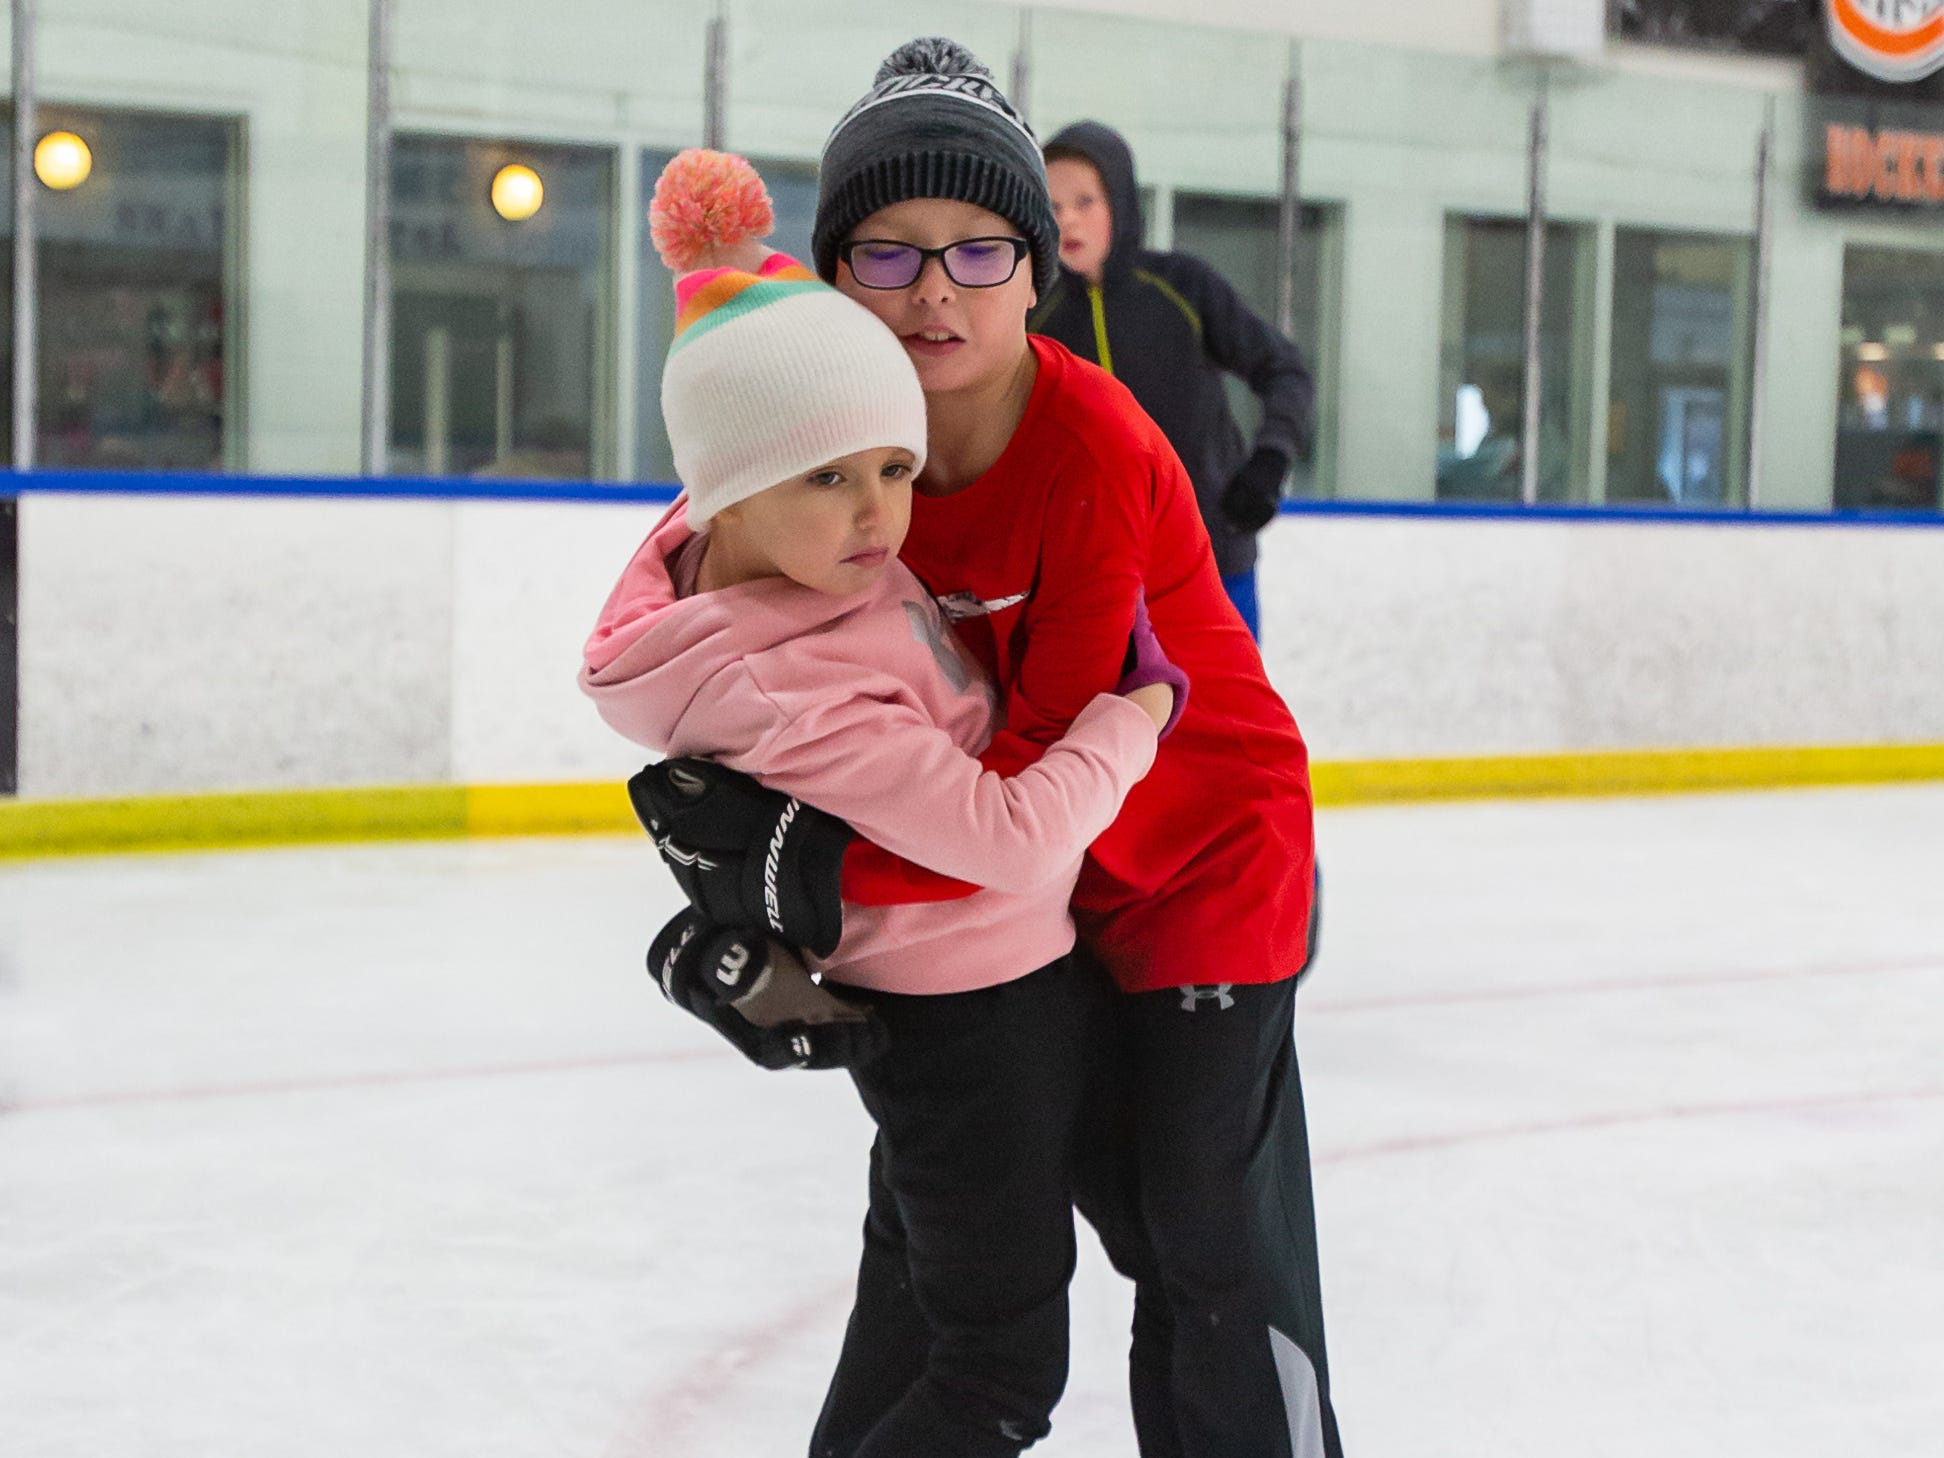 Dominic LaRosa, 9, of Cedarburg steadies his sister Gianna, 7, as they enjoy the public skating hours at the Ozaukee Ice Center in Mequon on Saturday, Dec. 22, 2018.